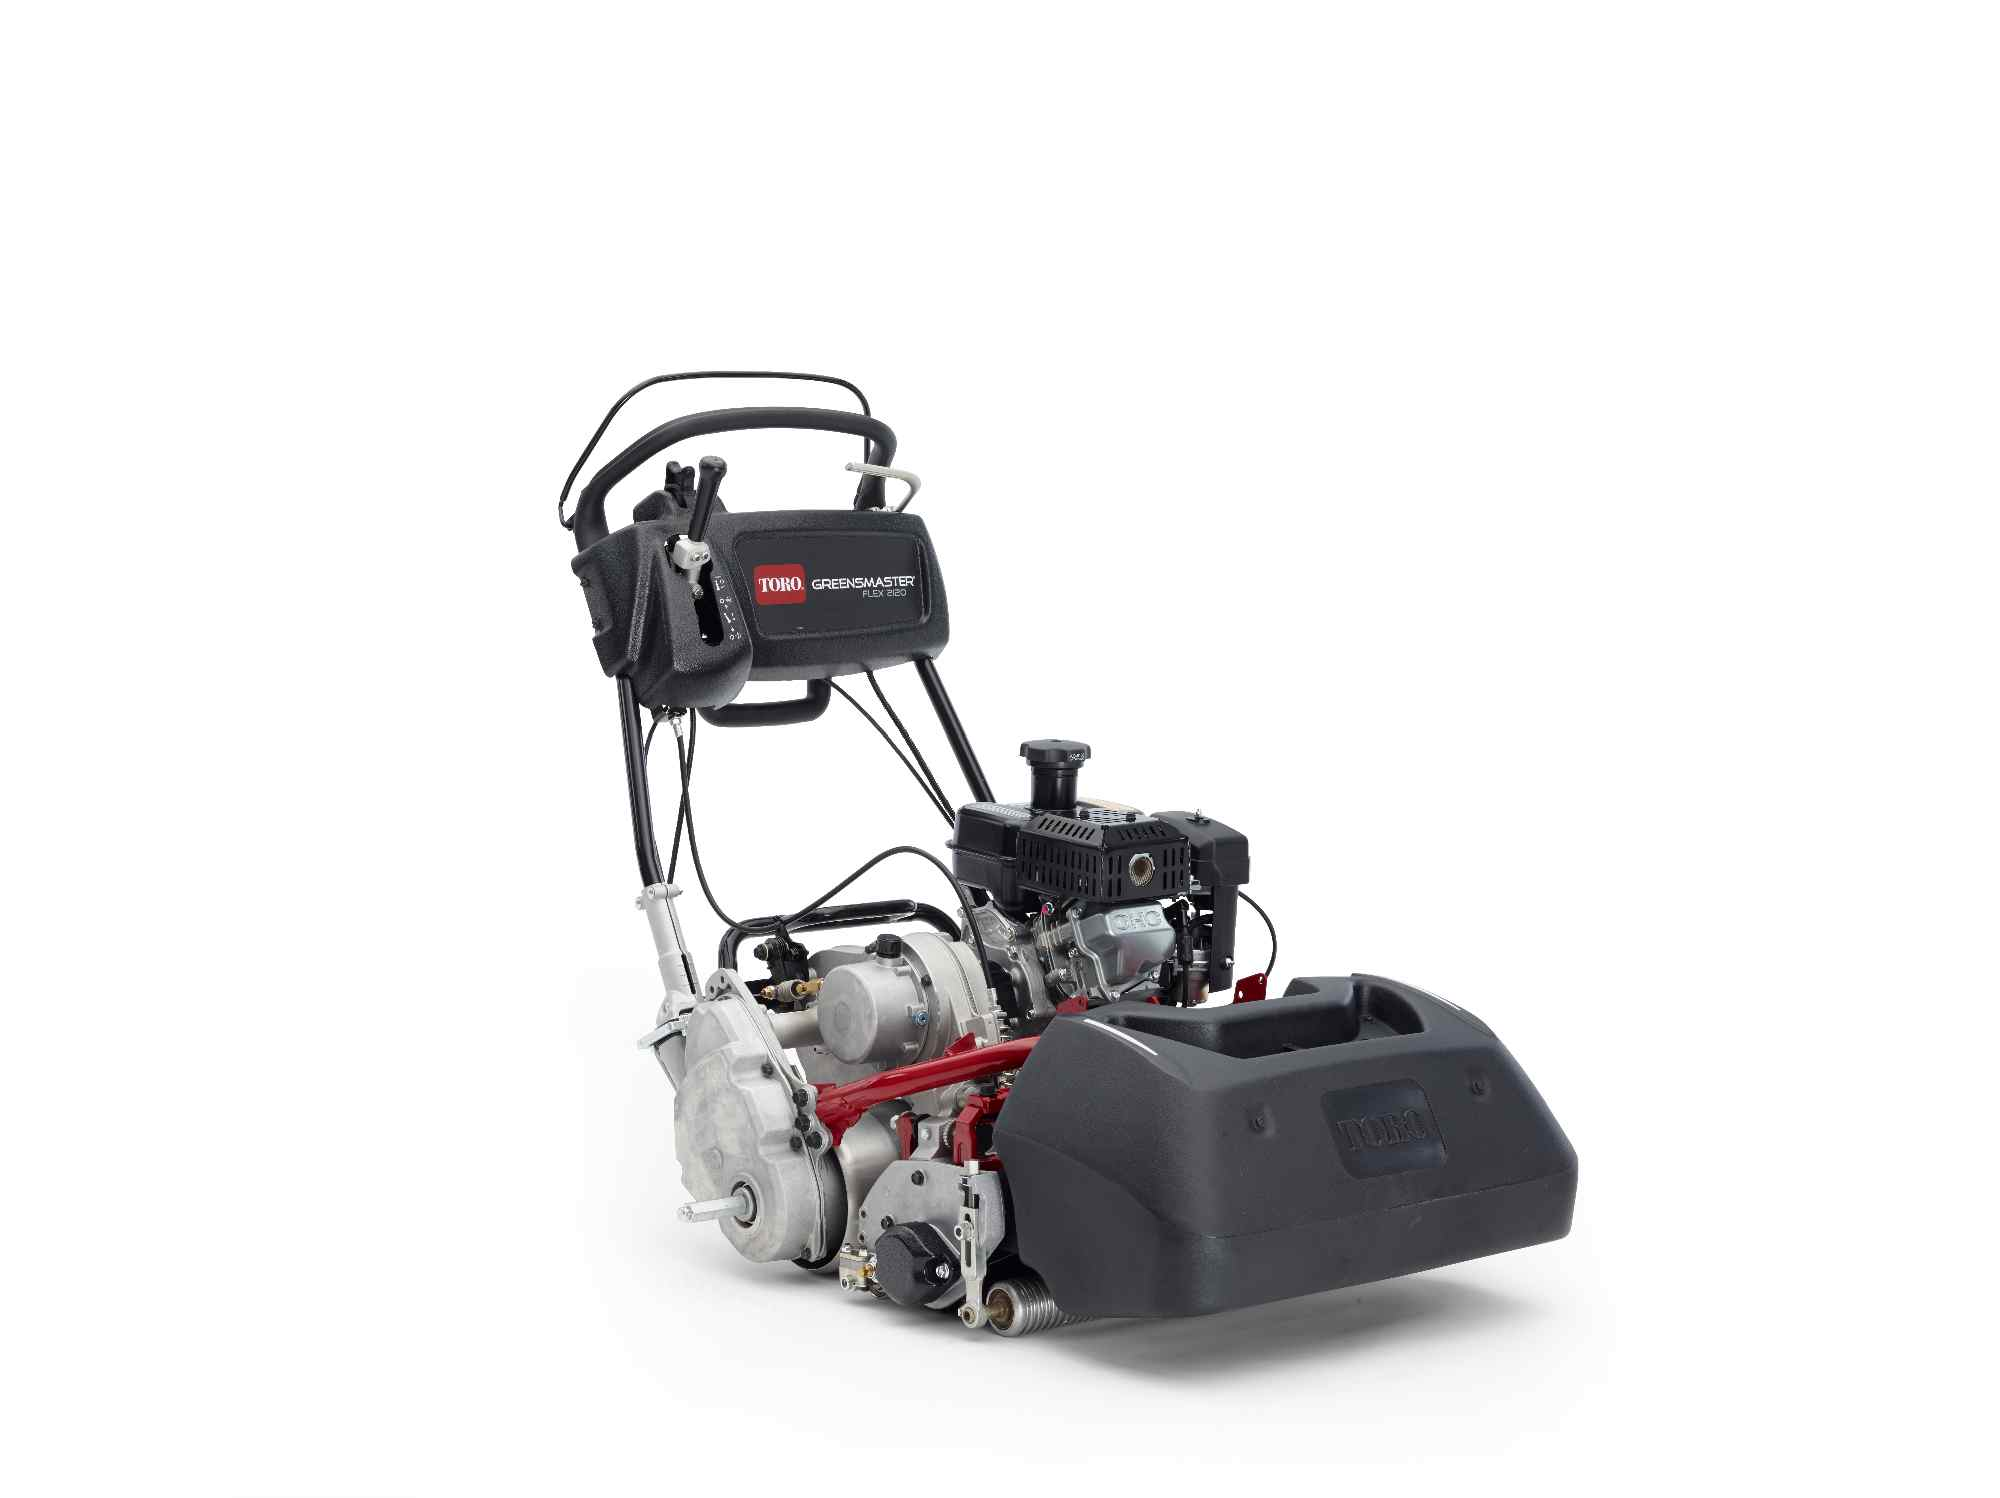 New Toro® Greensmaster Flex™ 2120 provides a precise cut and easy operation